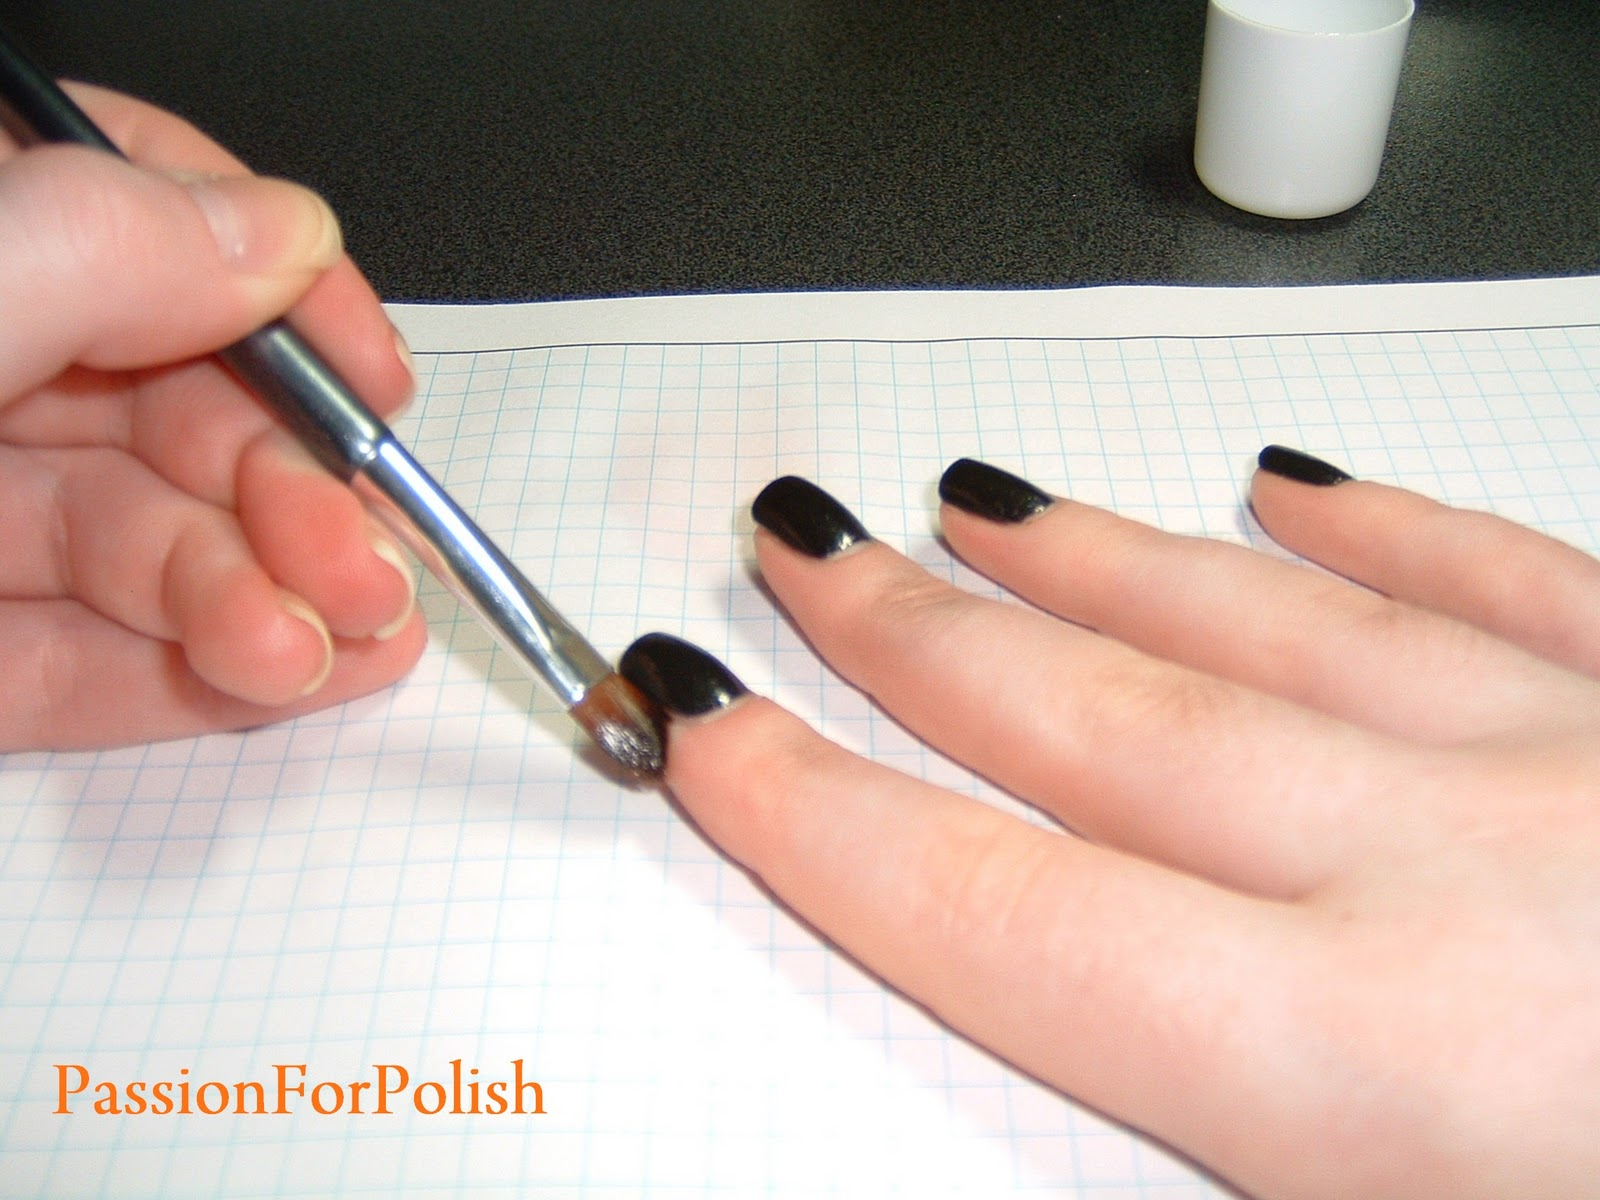 PassionForPolish: How To Clean Up Your Manicure